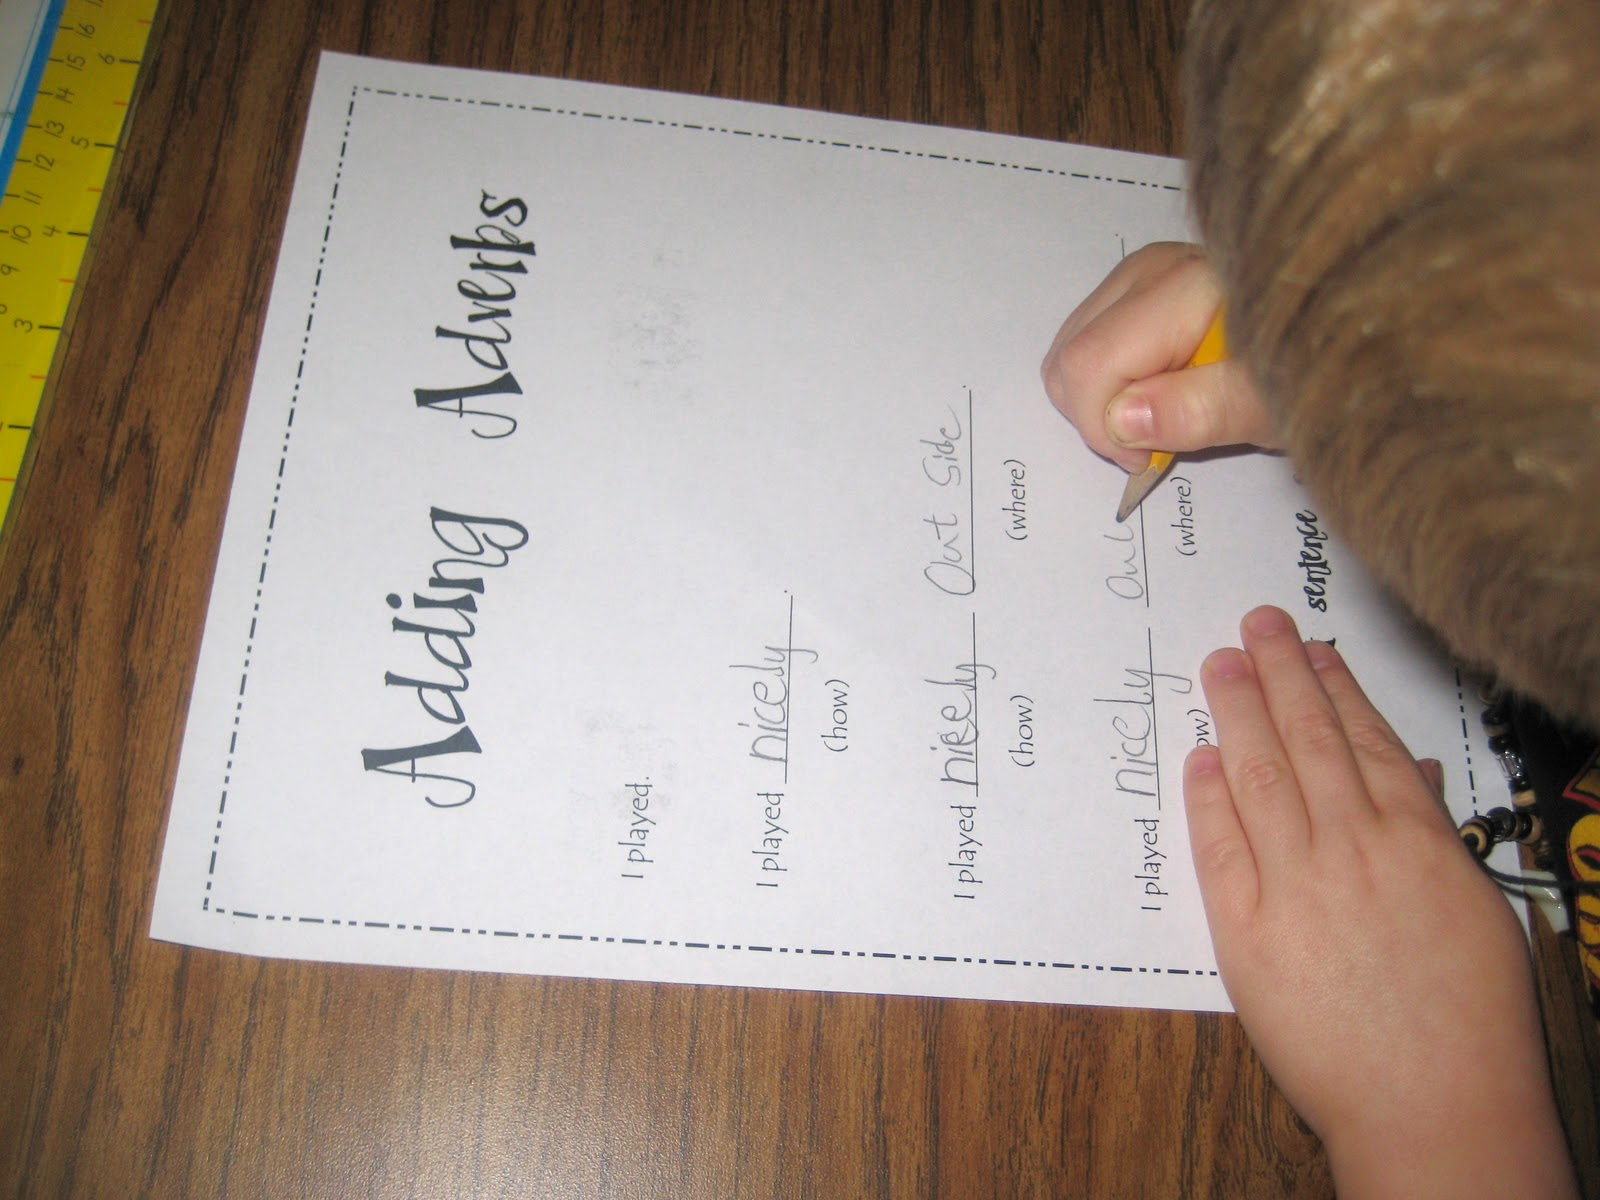 First Grade Wow Adding Adverbs